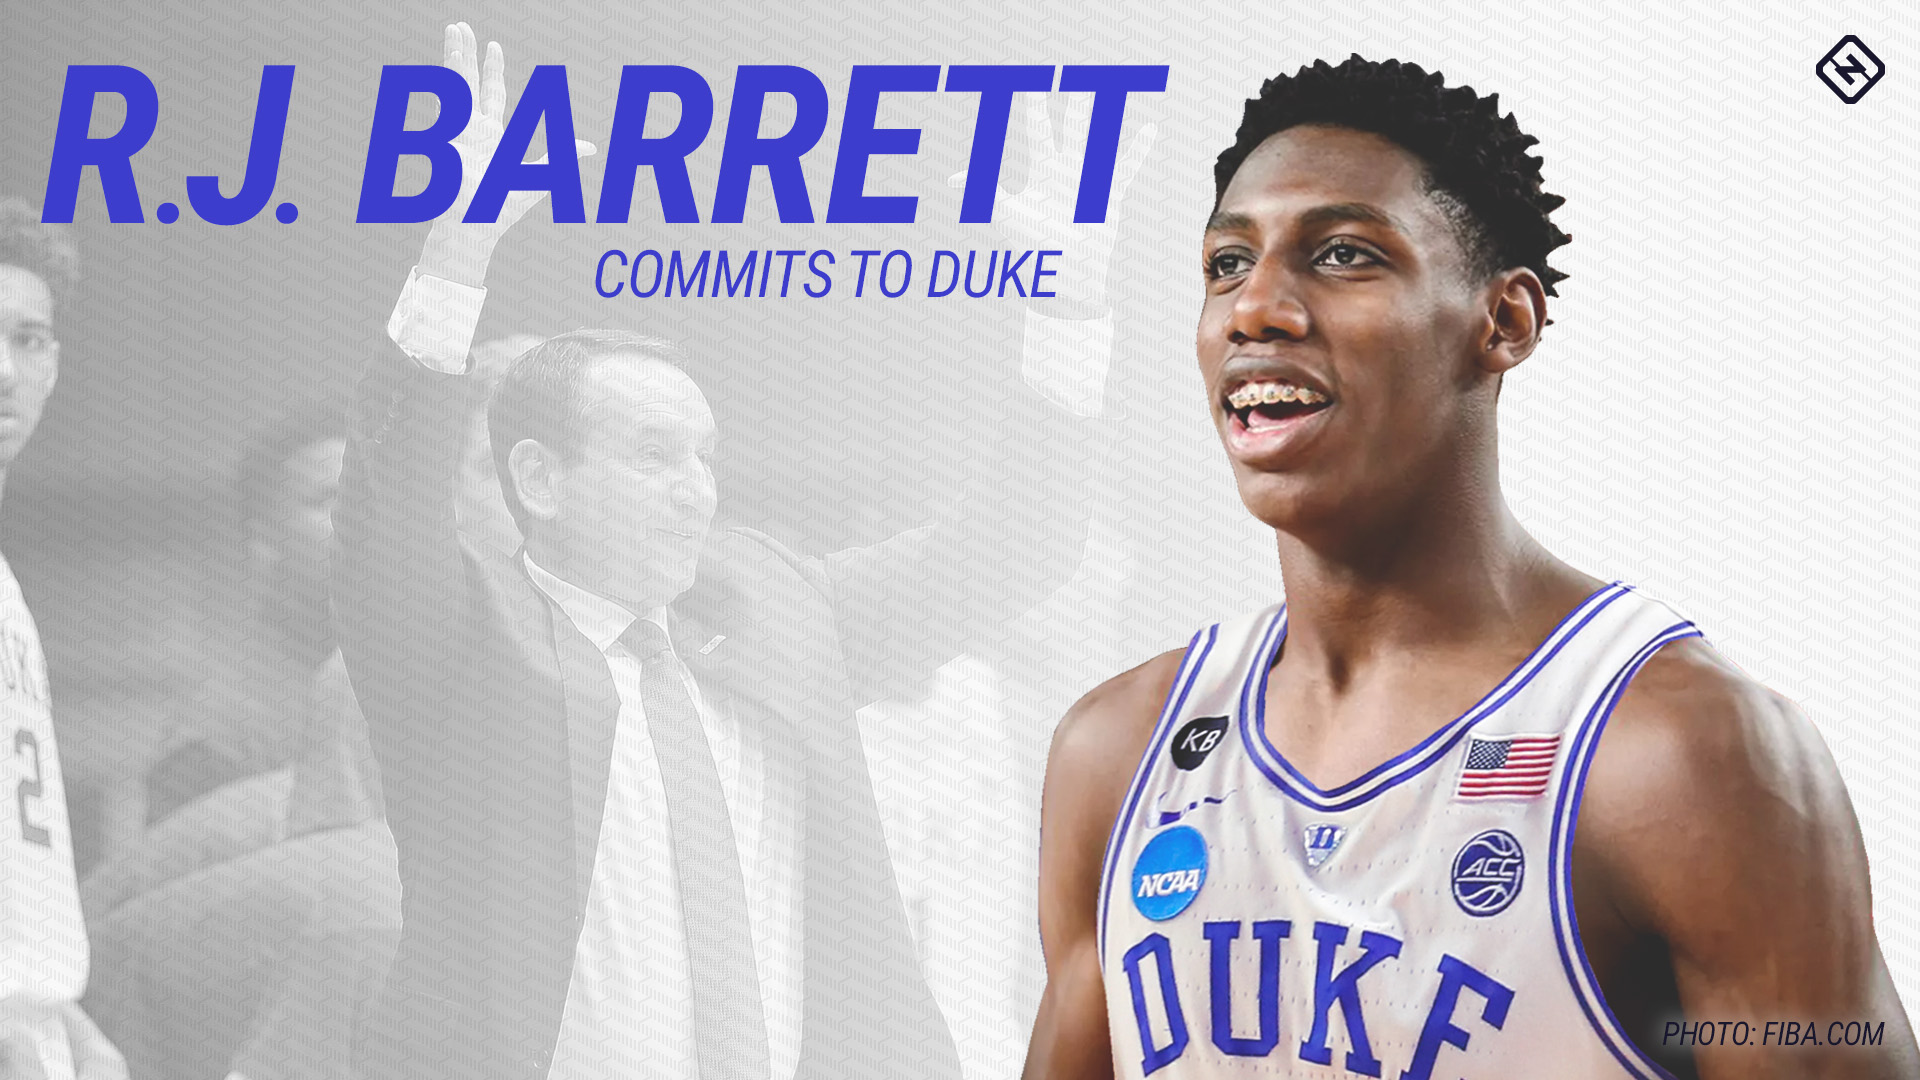 R.J. Barrett again bedevils John Calipari by making Duke his college choice | NCAA Basketball ...